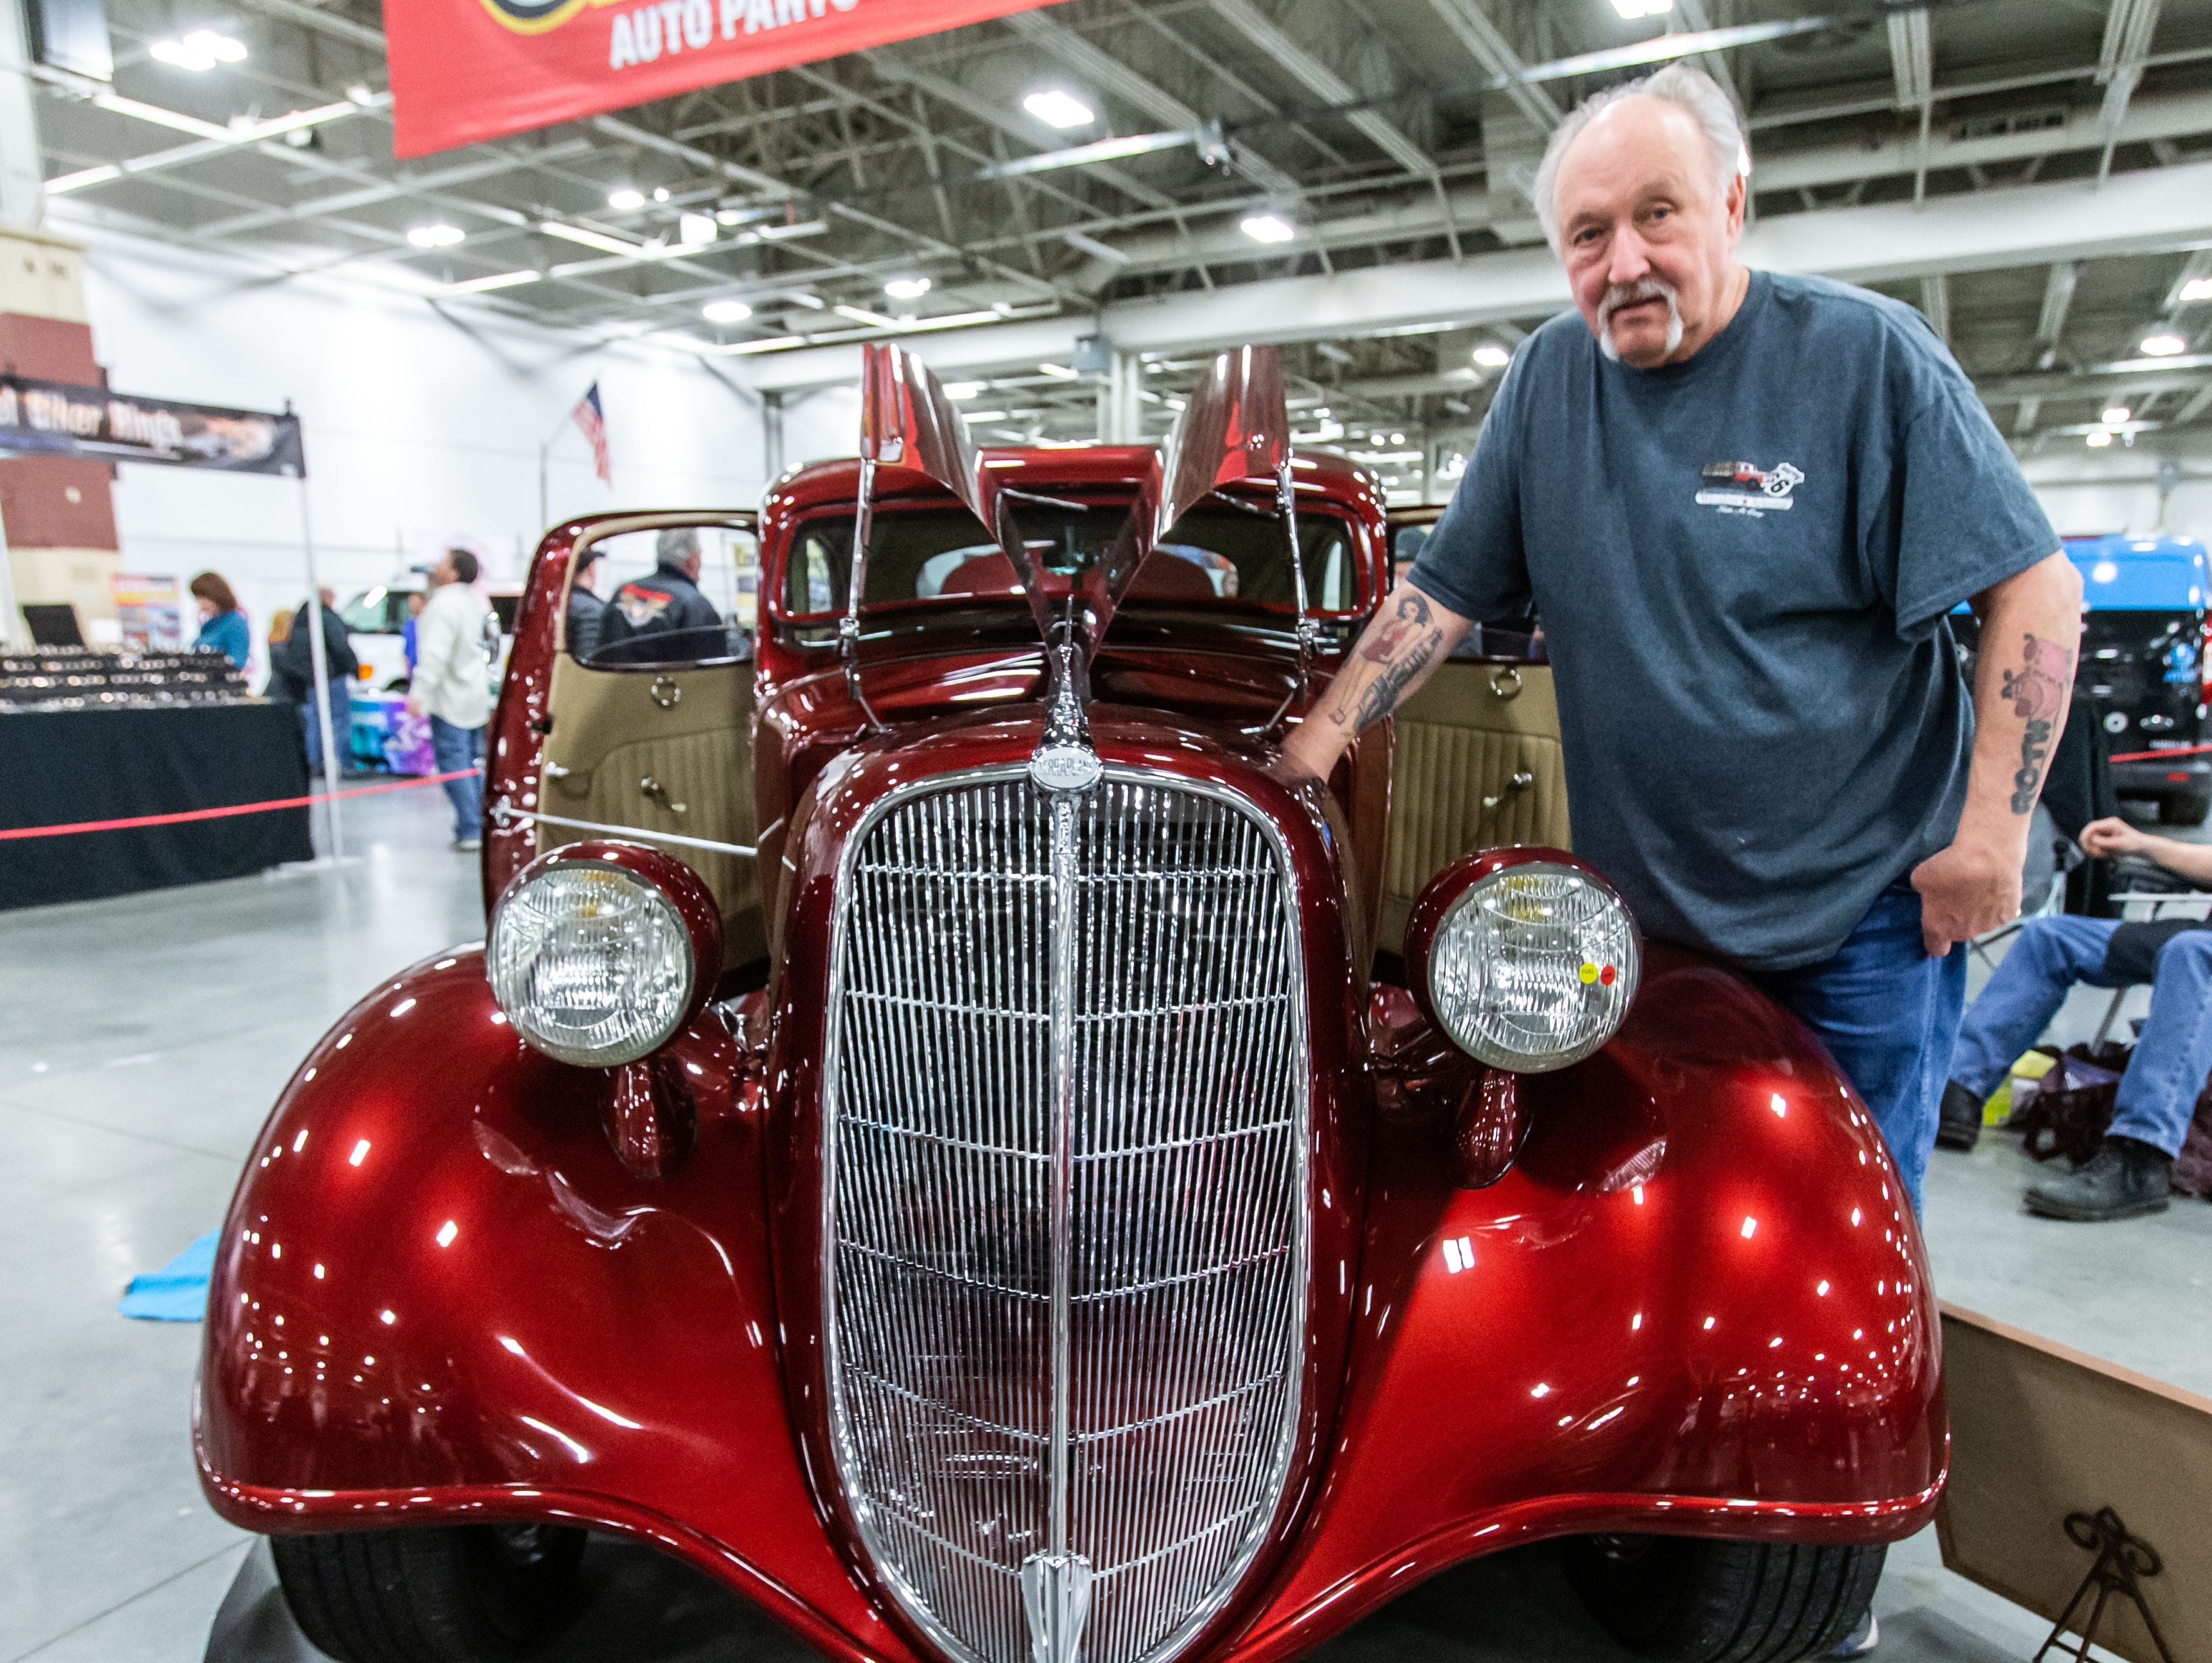 Jim Racinowski of Whitewater shows his 1935 Hudson Terraplane during the 57th annual O'Reilly Auto Parts World of Wheels at State Fair Park in West Allis on Saturday, Feb. 23, 2019. The event features over 300 vehicles, celebrity appearances, vendors, a charity auction and more.